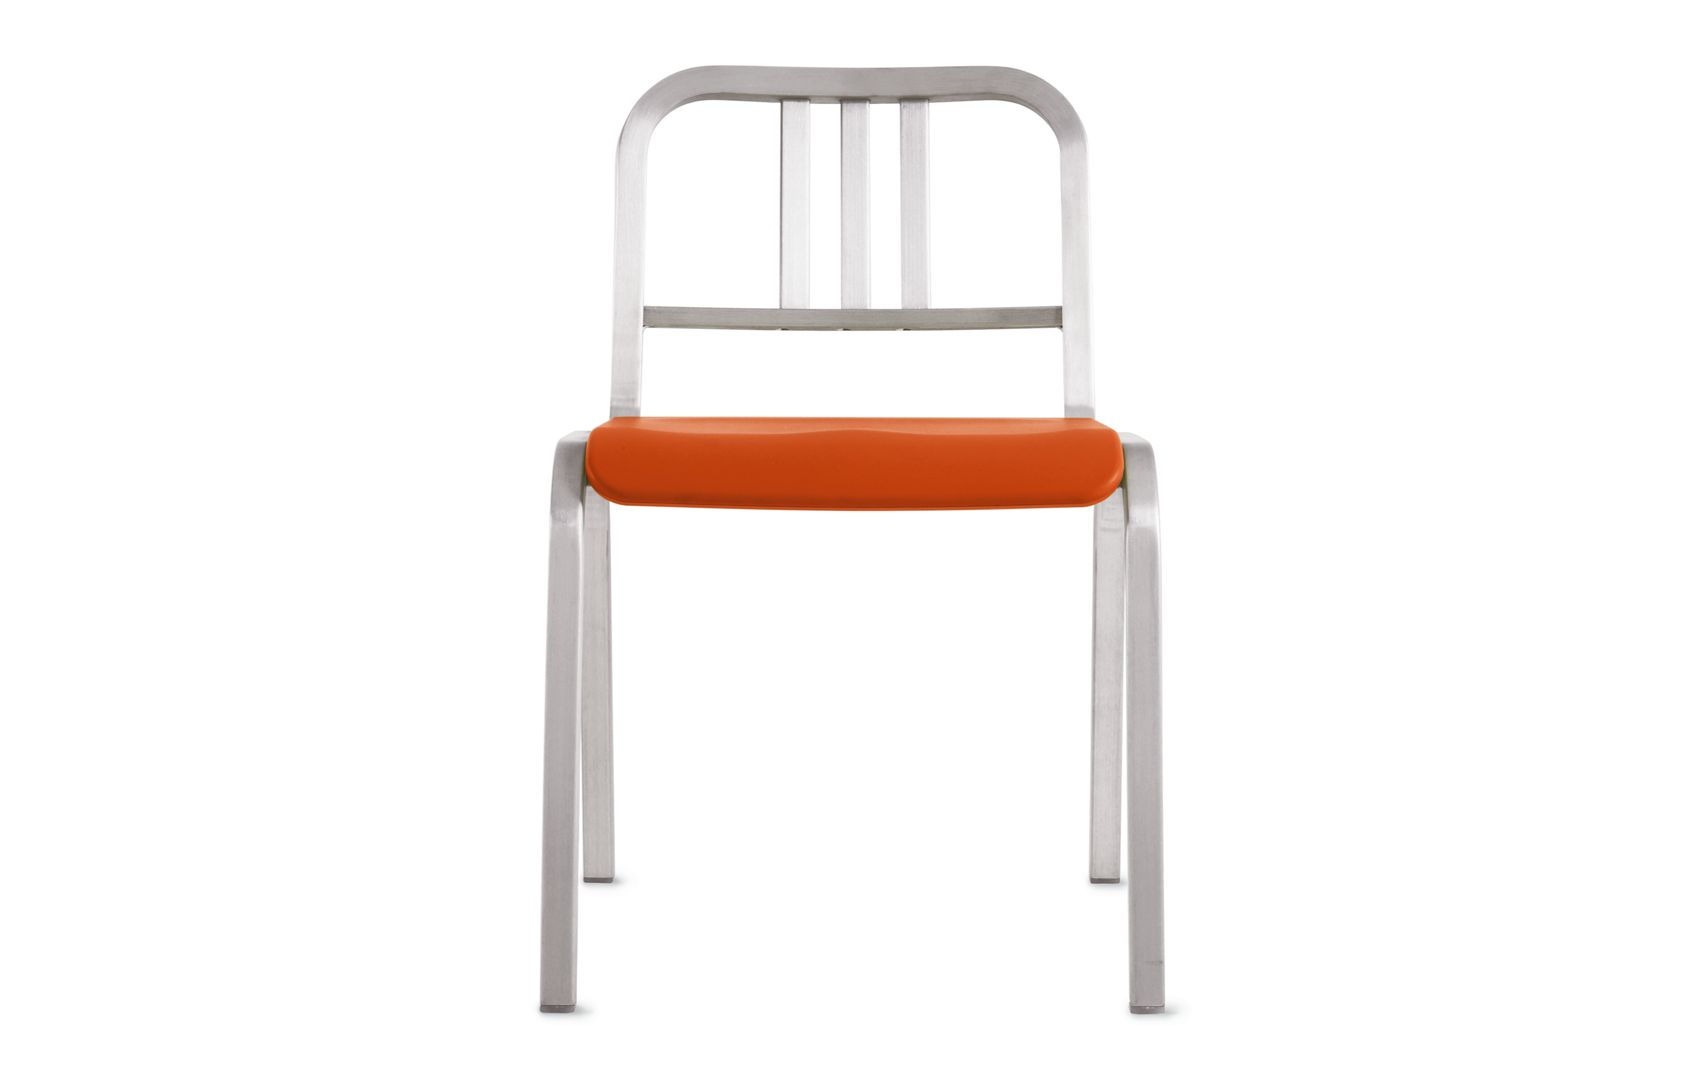 Nine-0 Stacking Chair, Ettore Sottsass for Emeco, via Design Within Reach